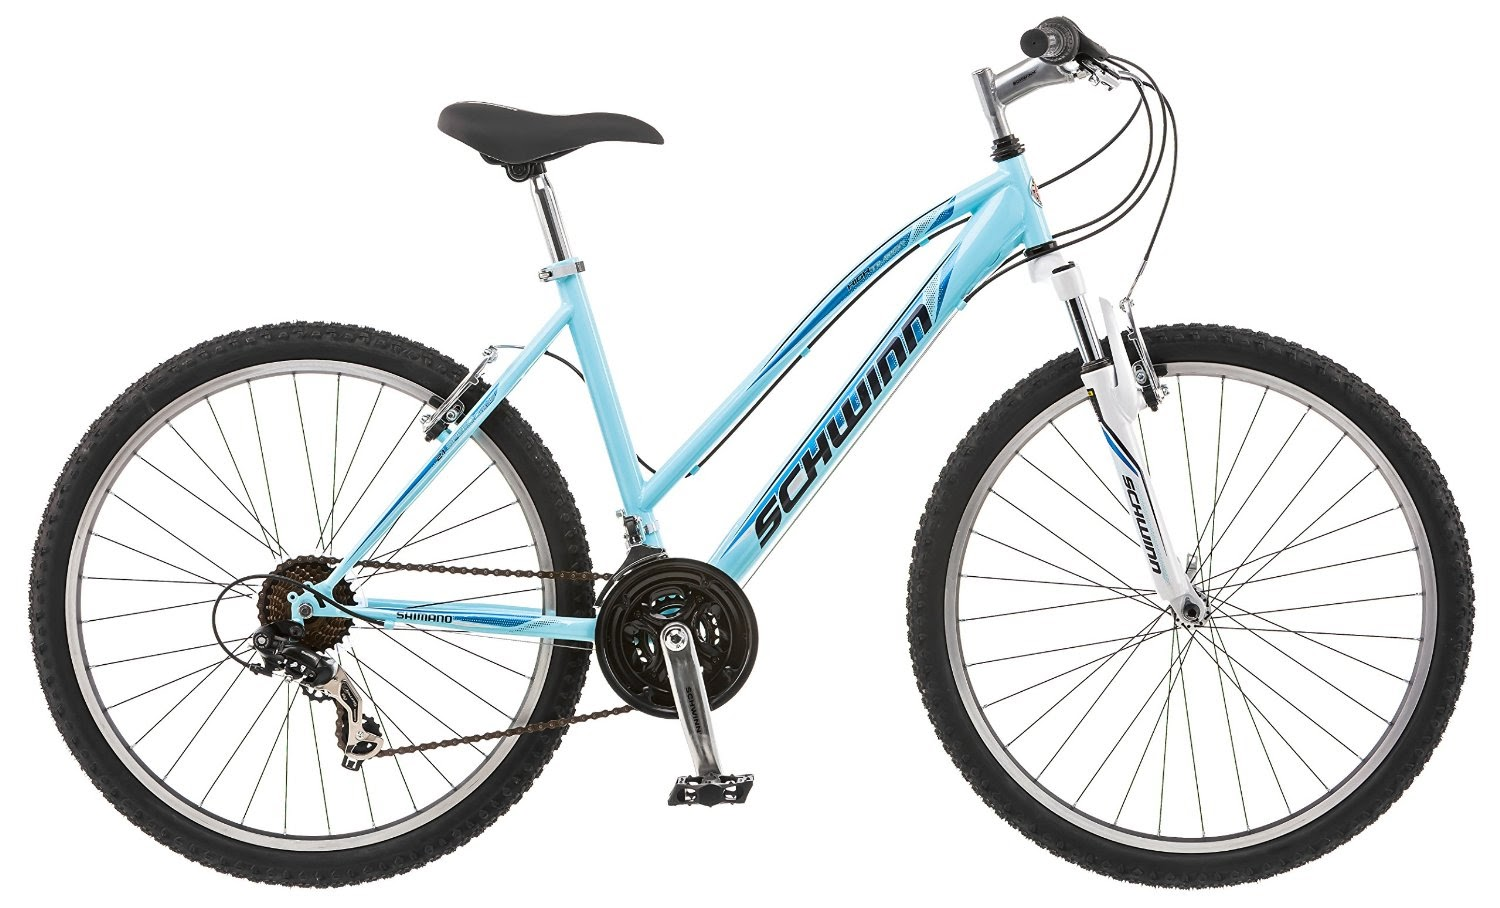 df6b92e1fa7 Schwinn Women's High Timber Mountain Bike in Blue (16